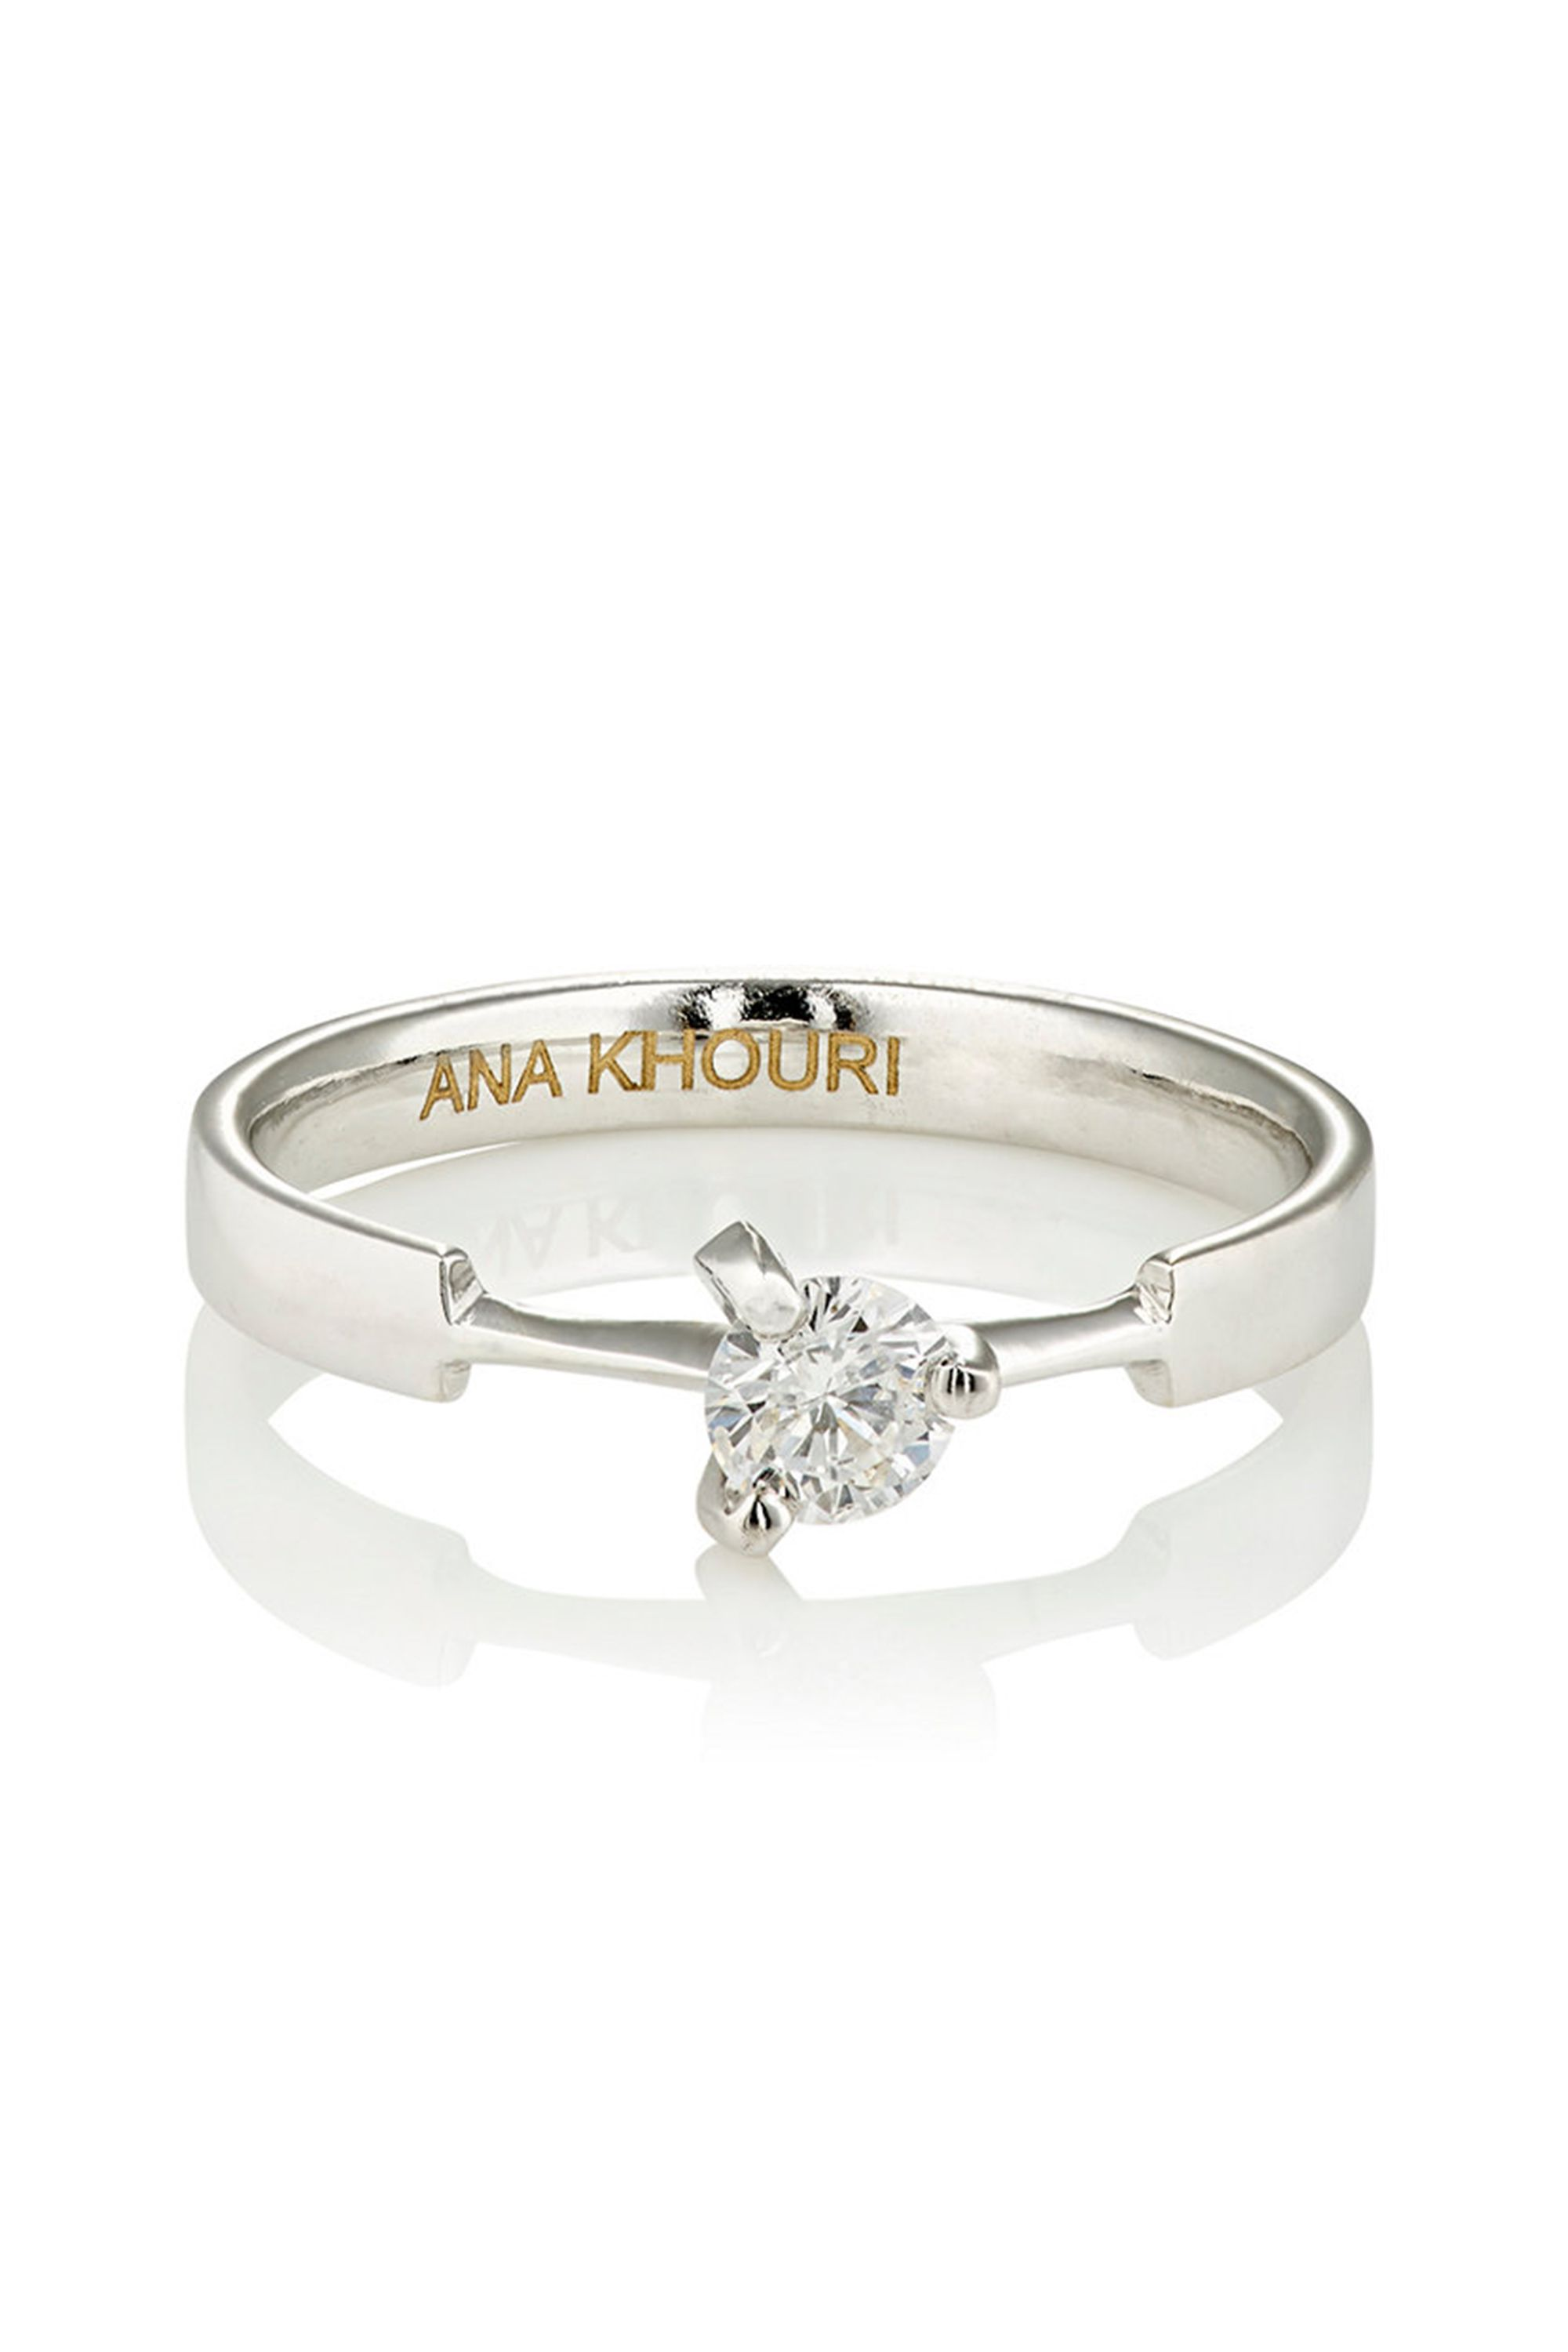 non for practical engagement themed a k wedding rings ring under traditional